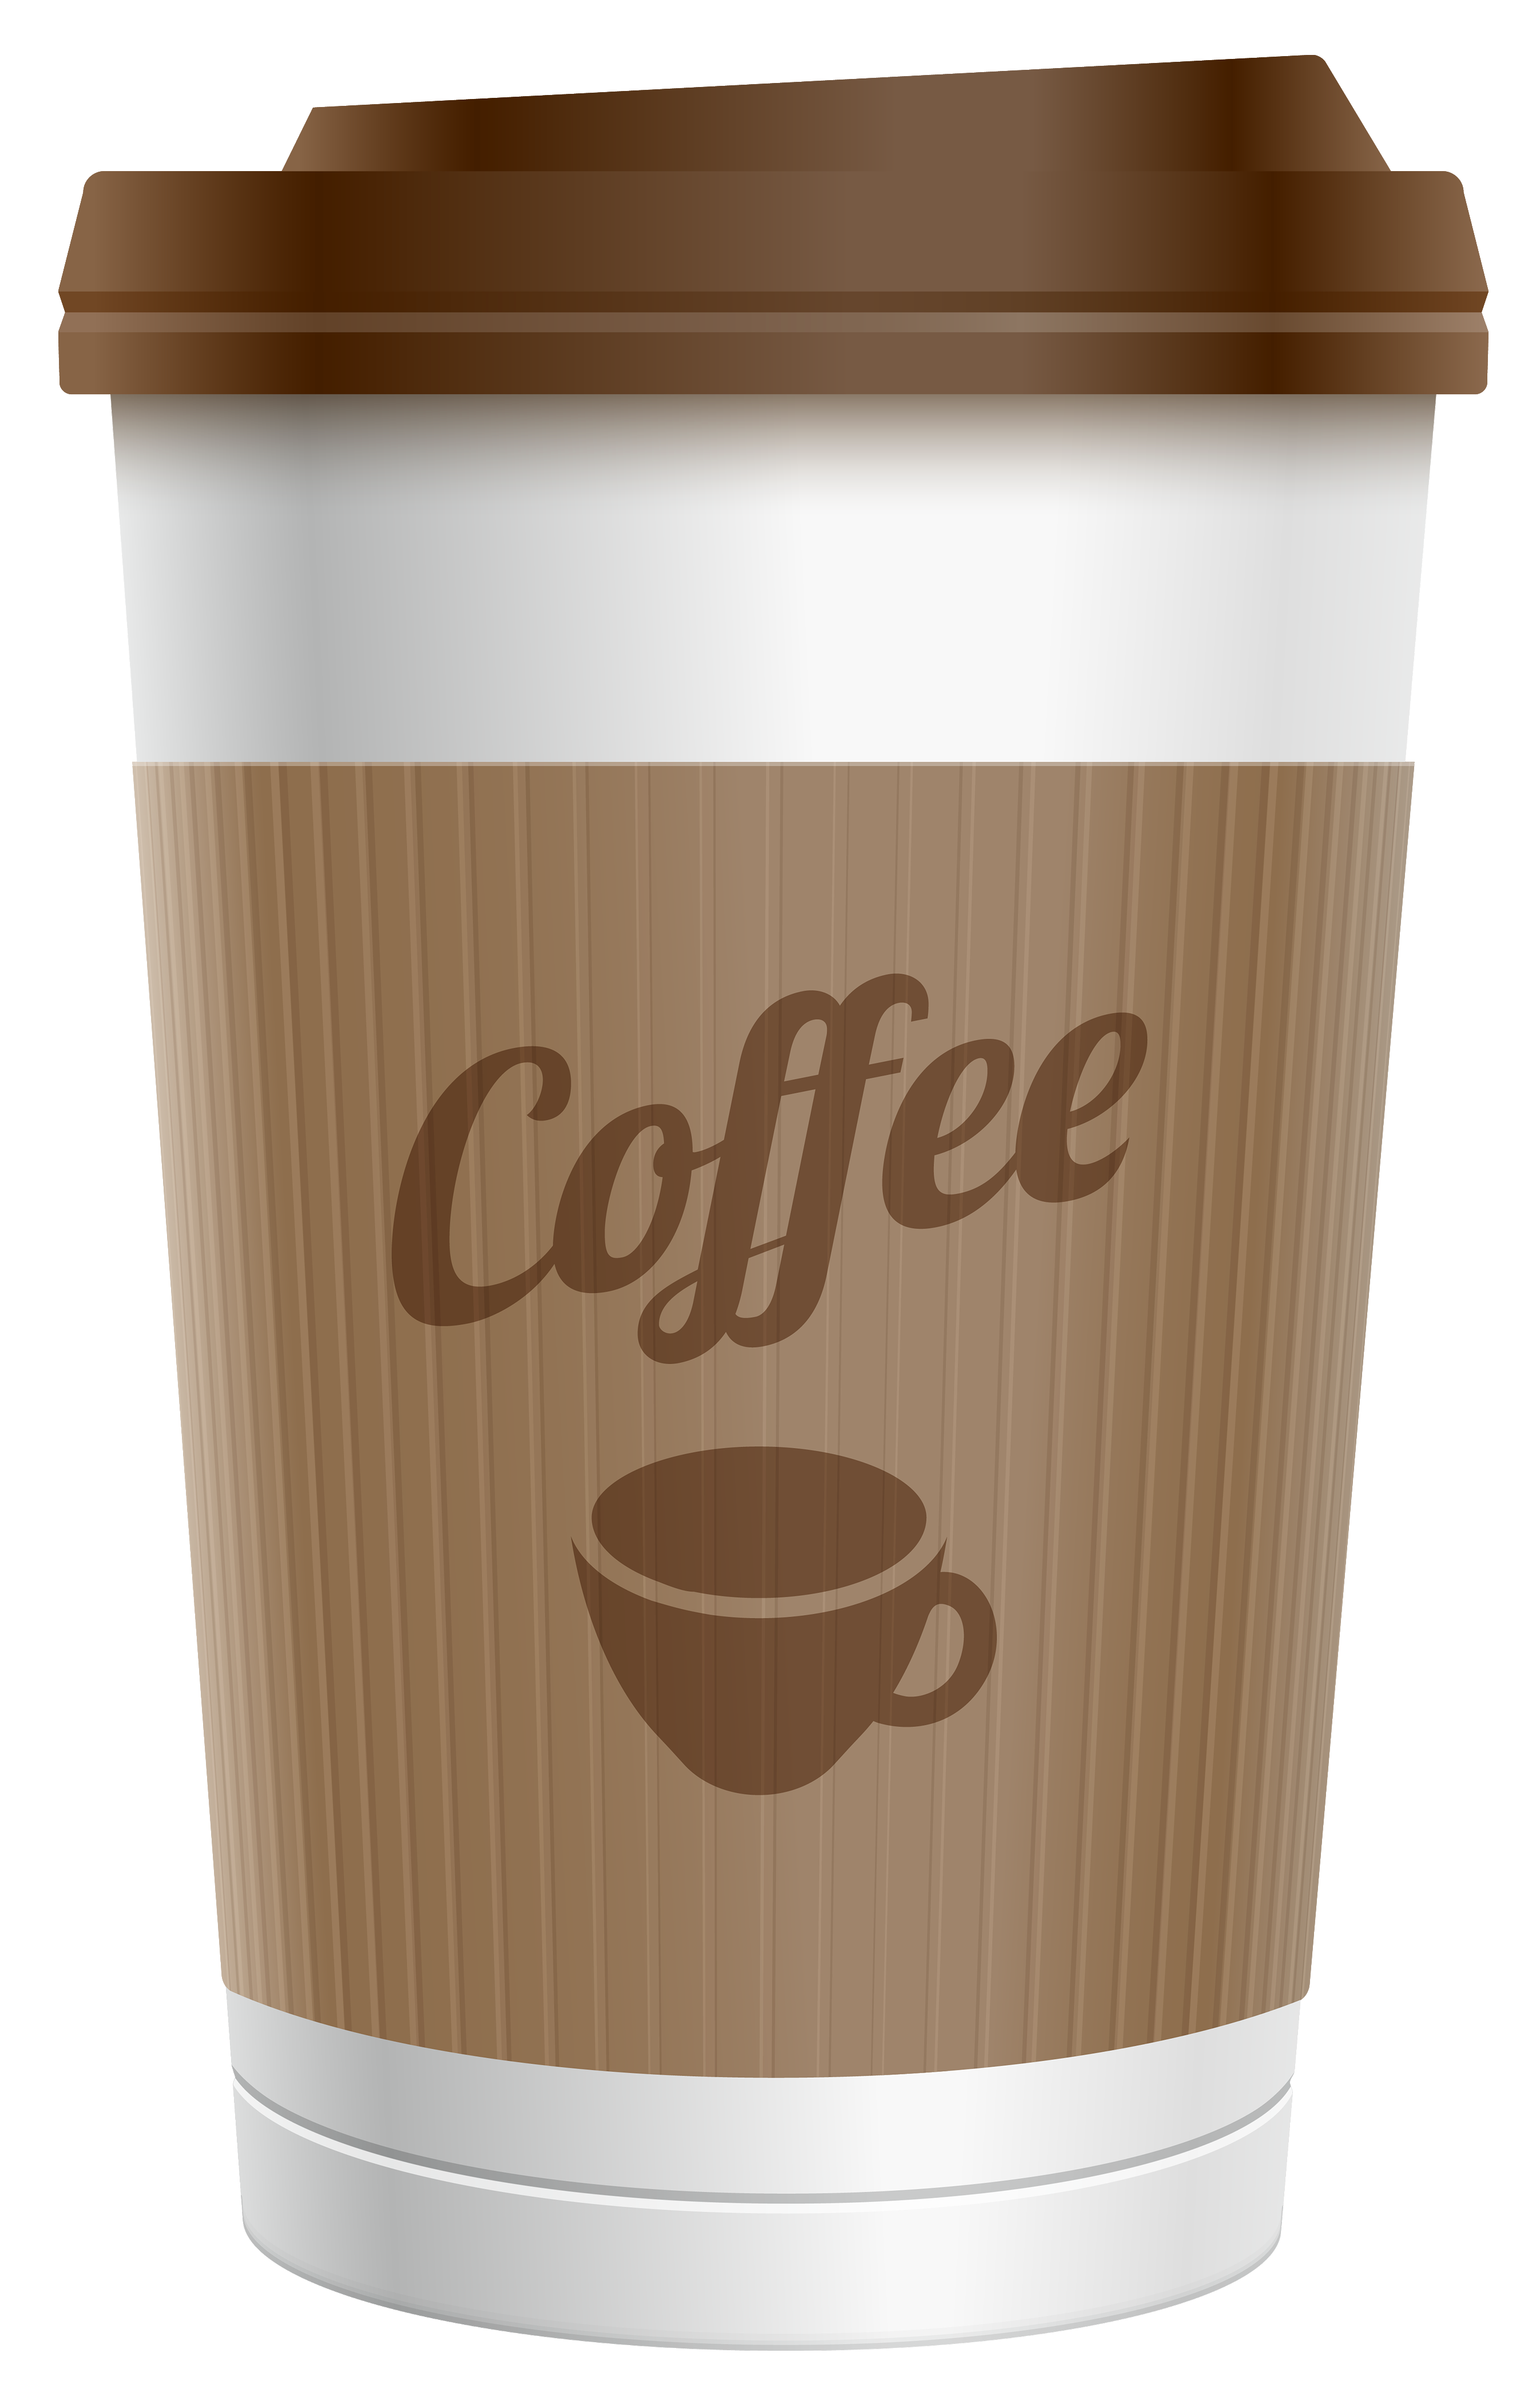 Cup clipart high resolution. Plastic coffee png image